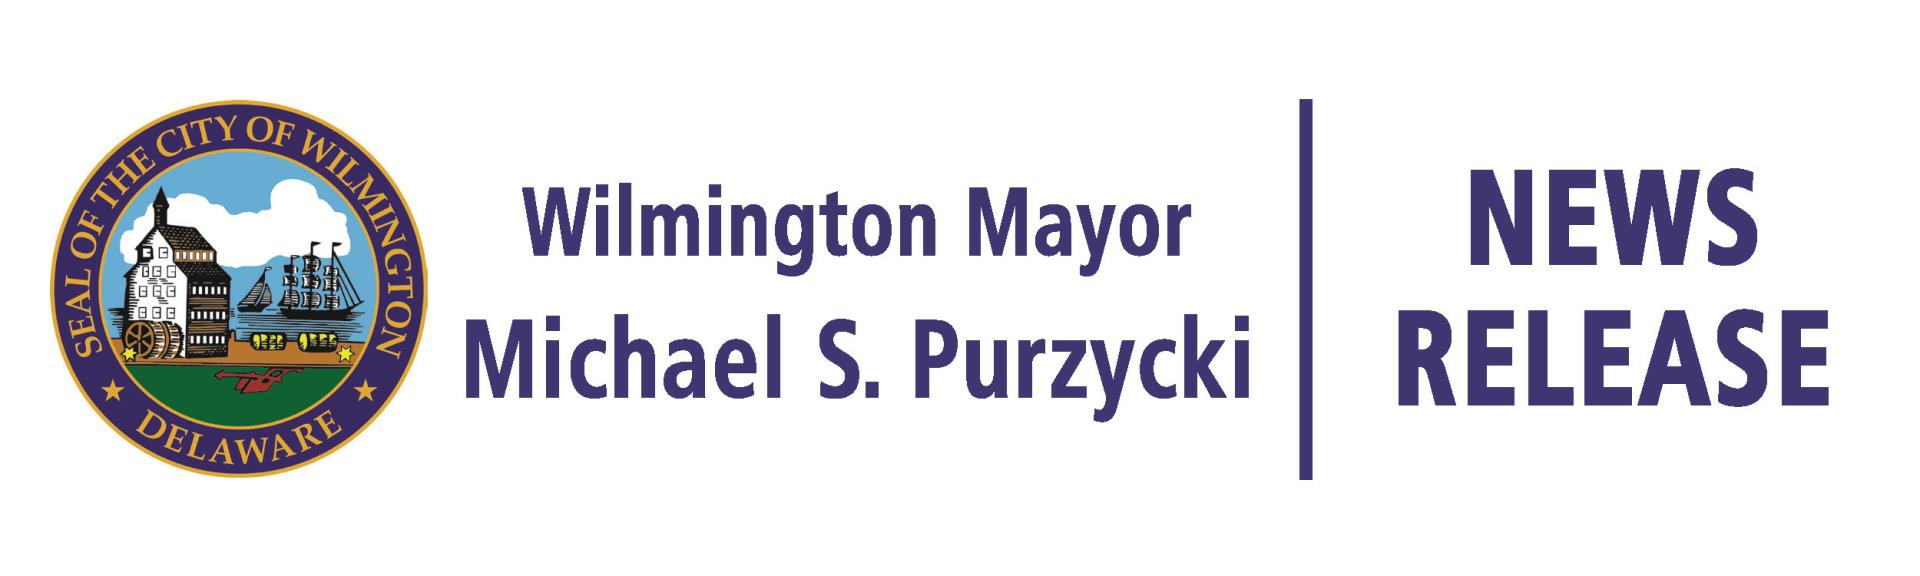 Mayor Michael S. Purzycki News Release Header